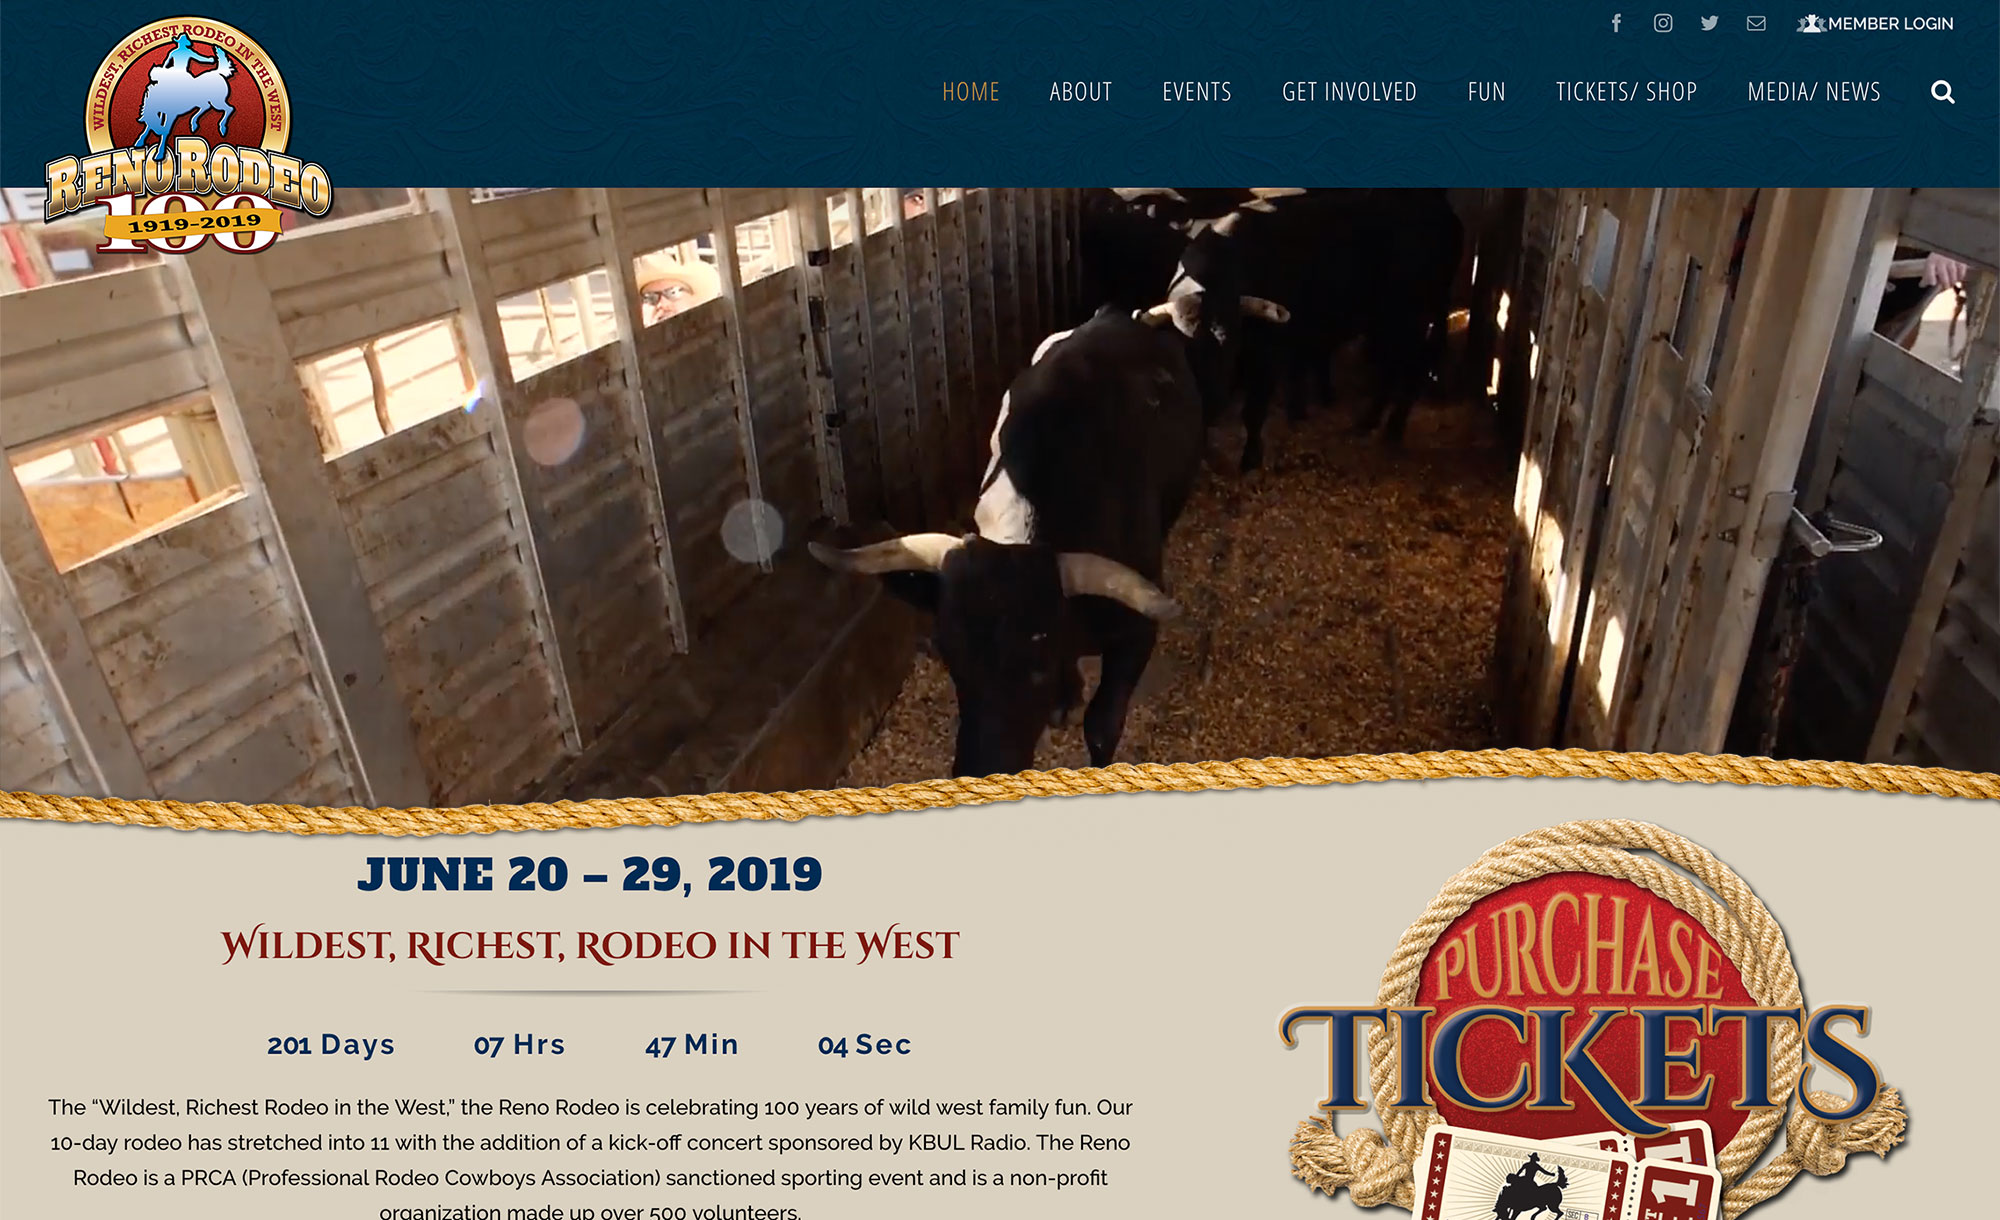 Reno Event Calendar 2019 Reno Rodeo   See you Next Year   June 18 27, 2020